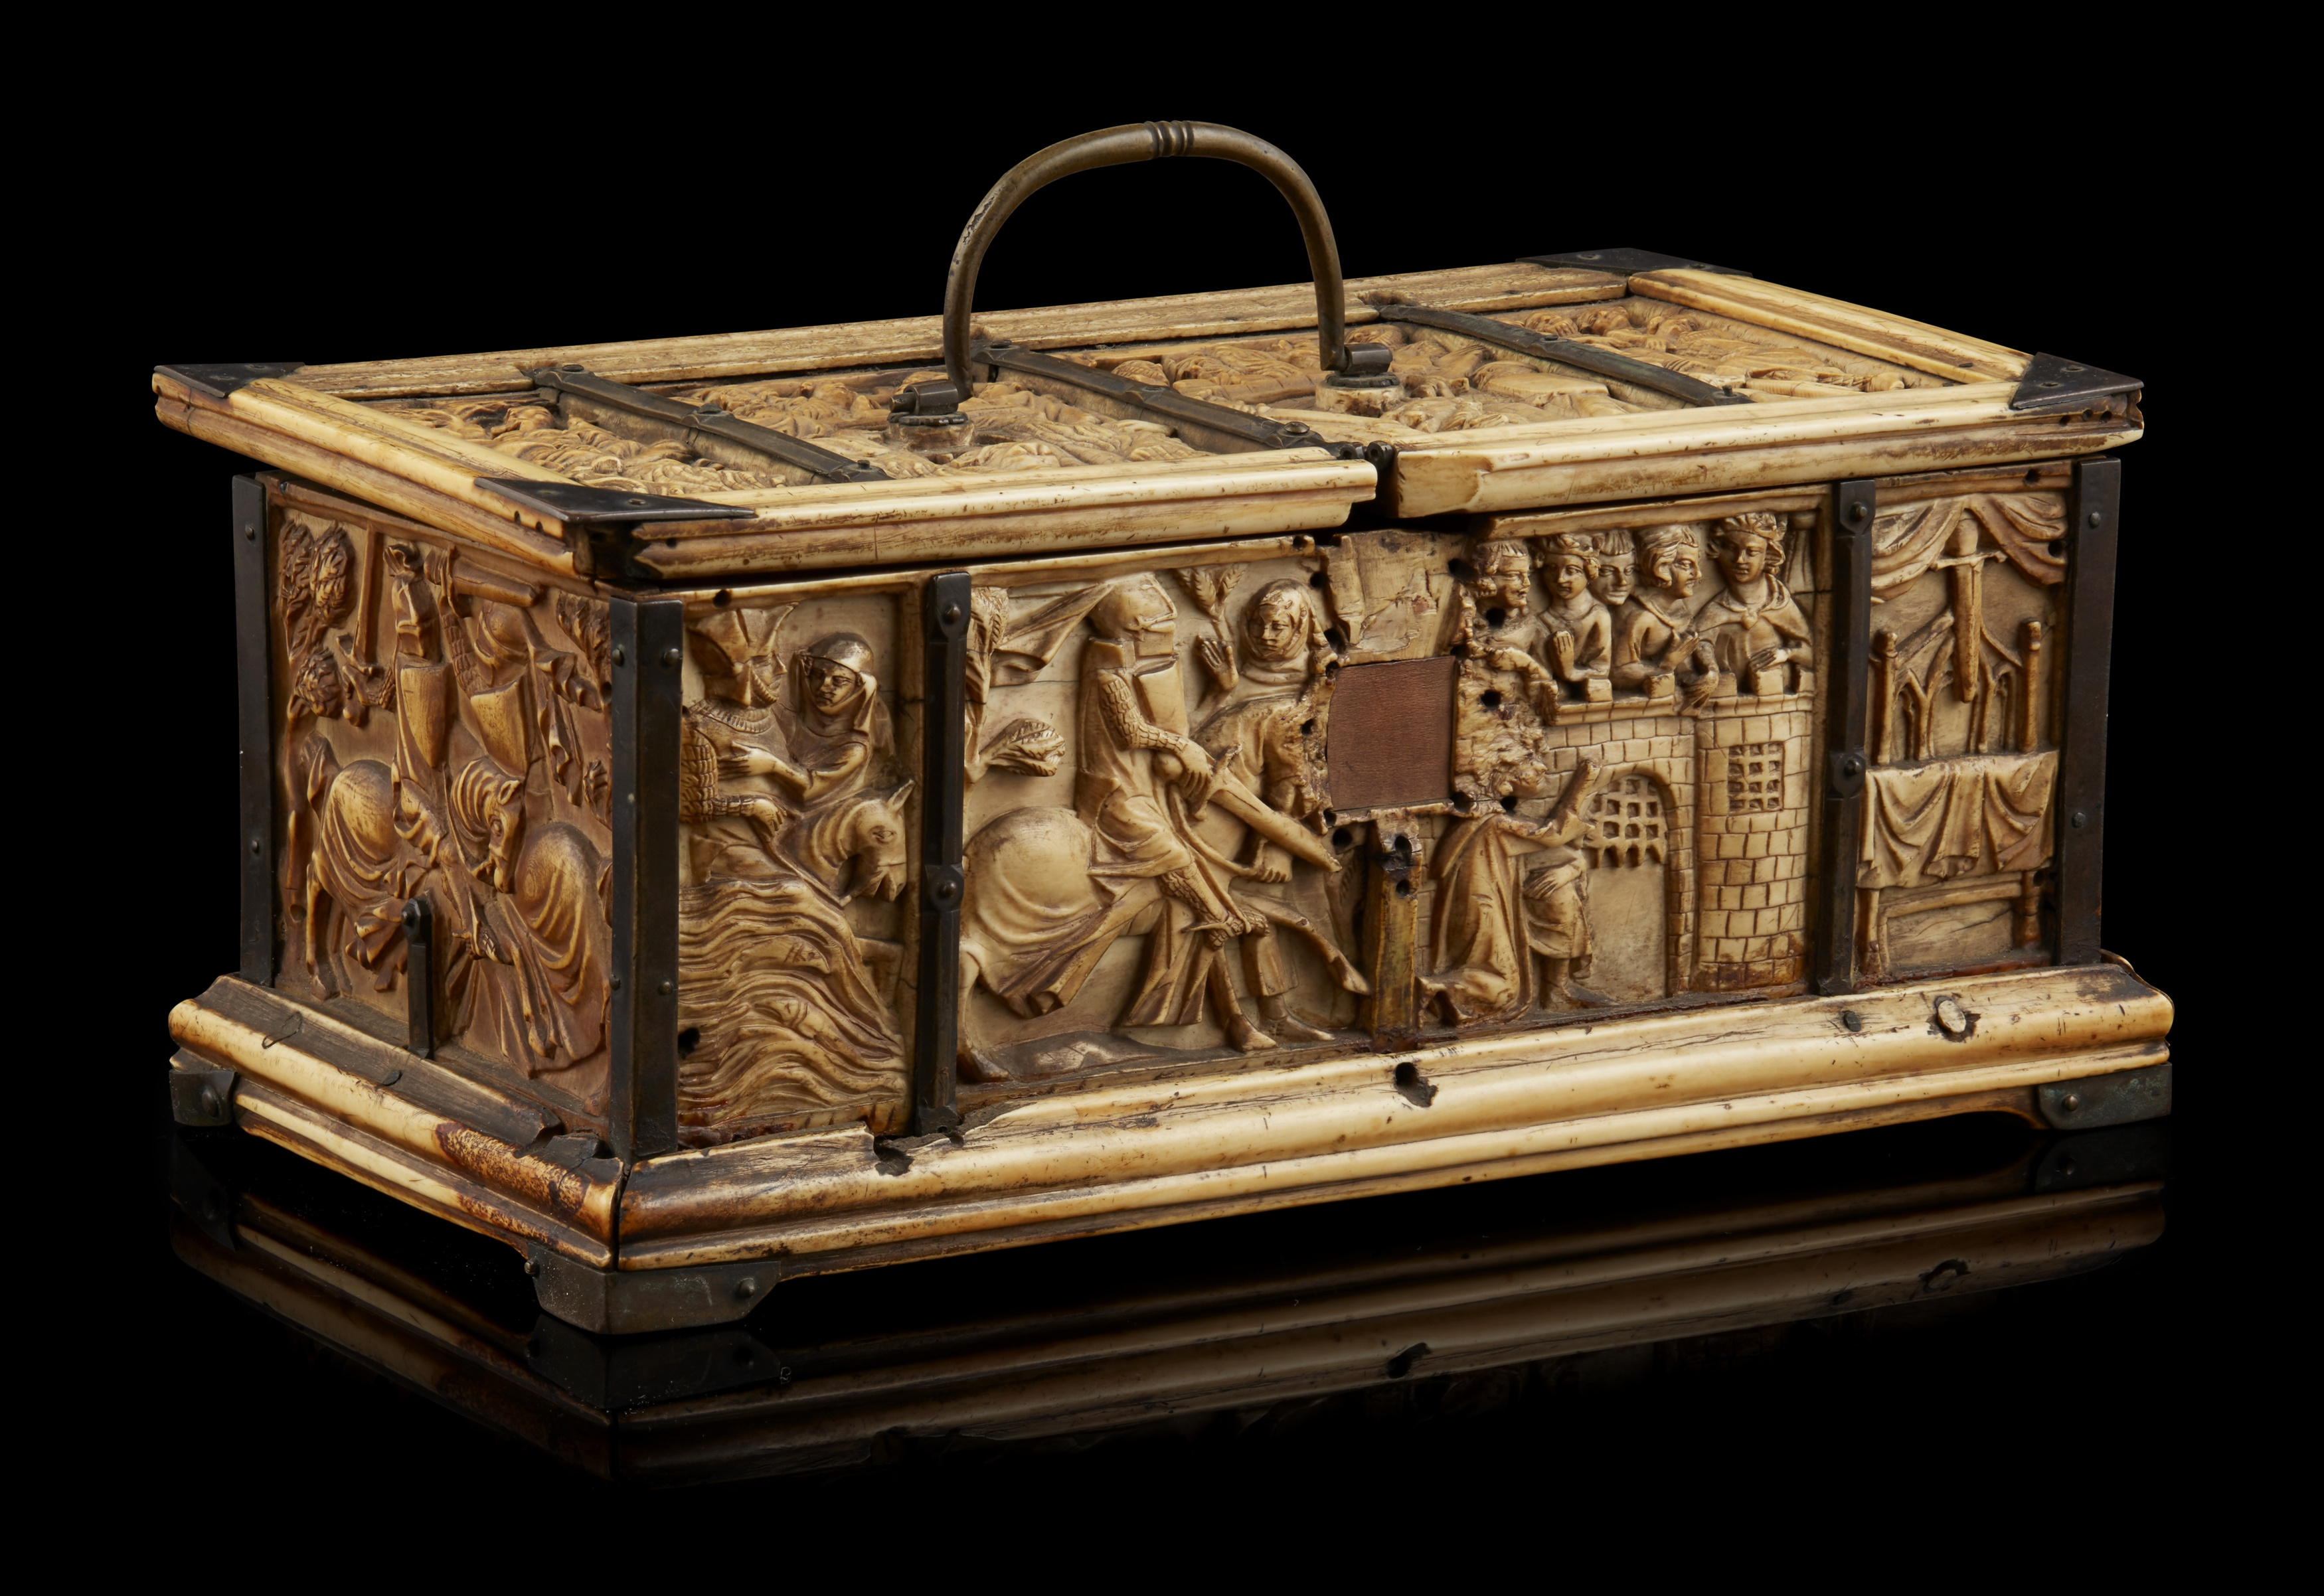 Y ◆ RARE AND IMPORTANT FRENCH GOTHIC IVORY COMPOSITE CASKET CIRCA 1330 - Image 8 of 8